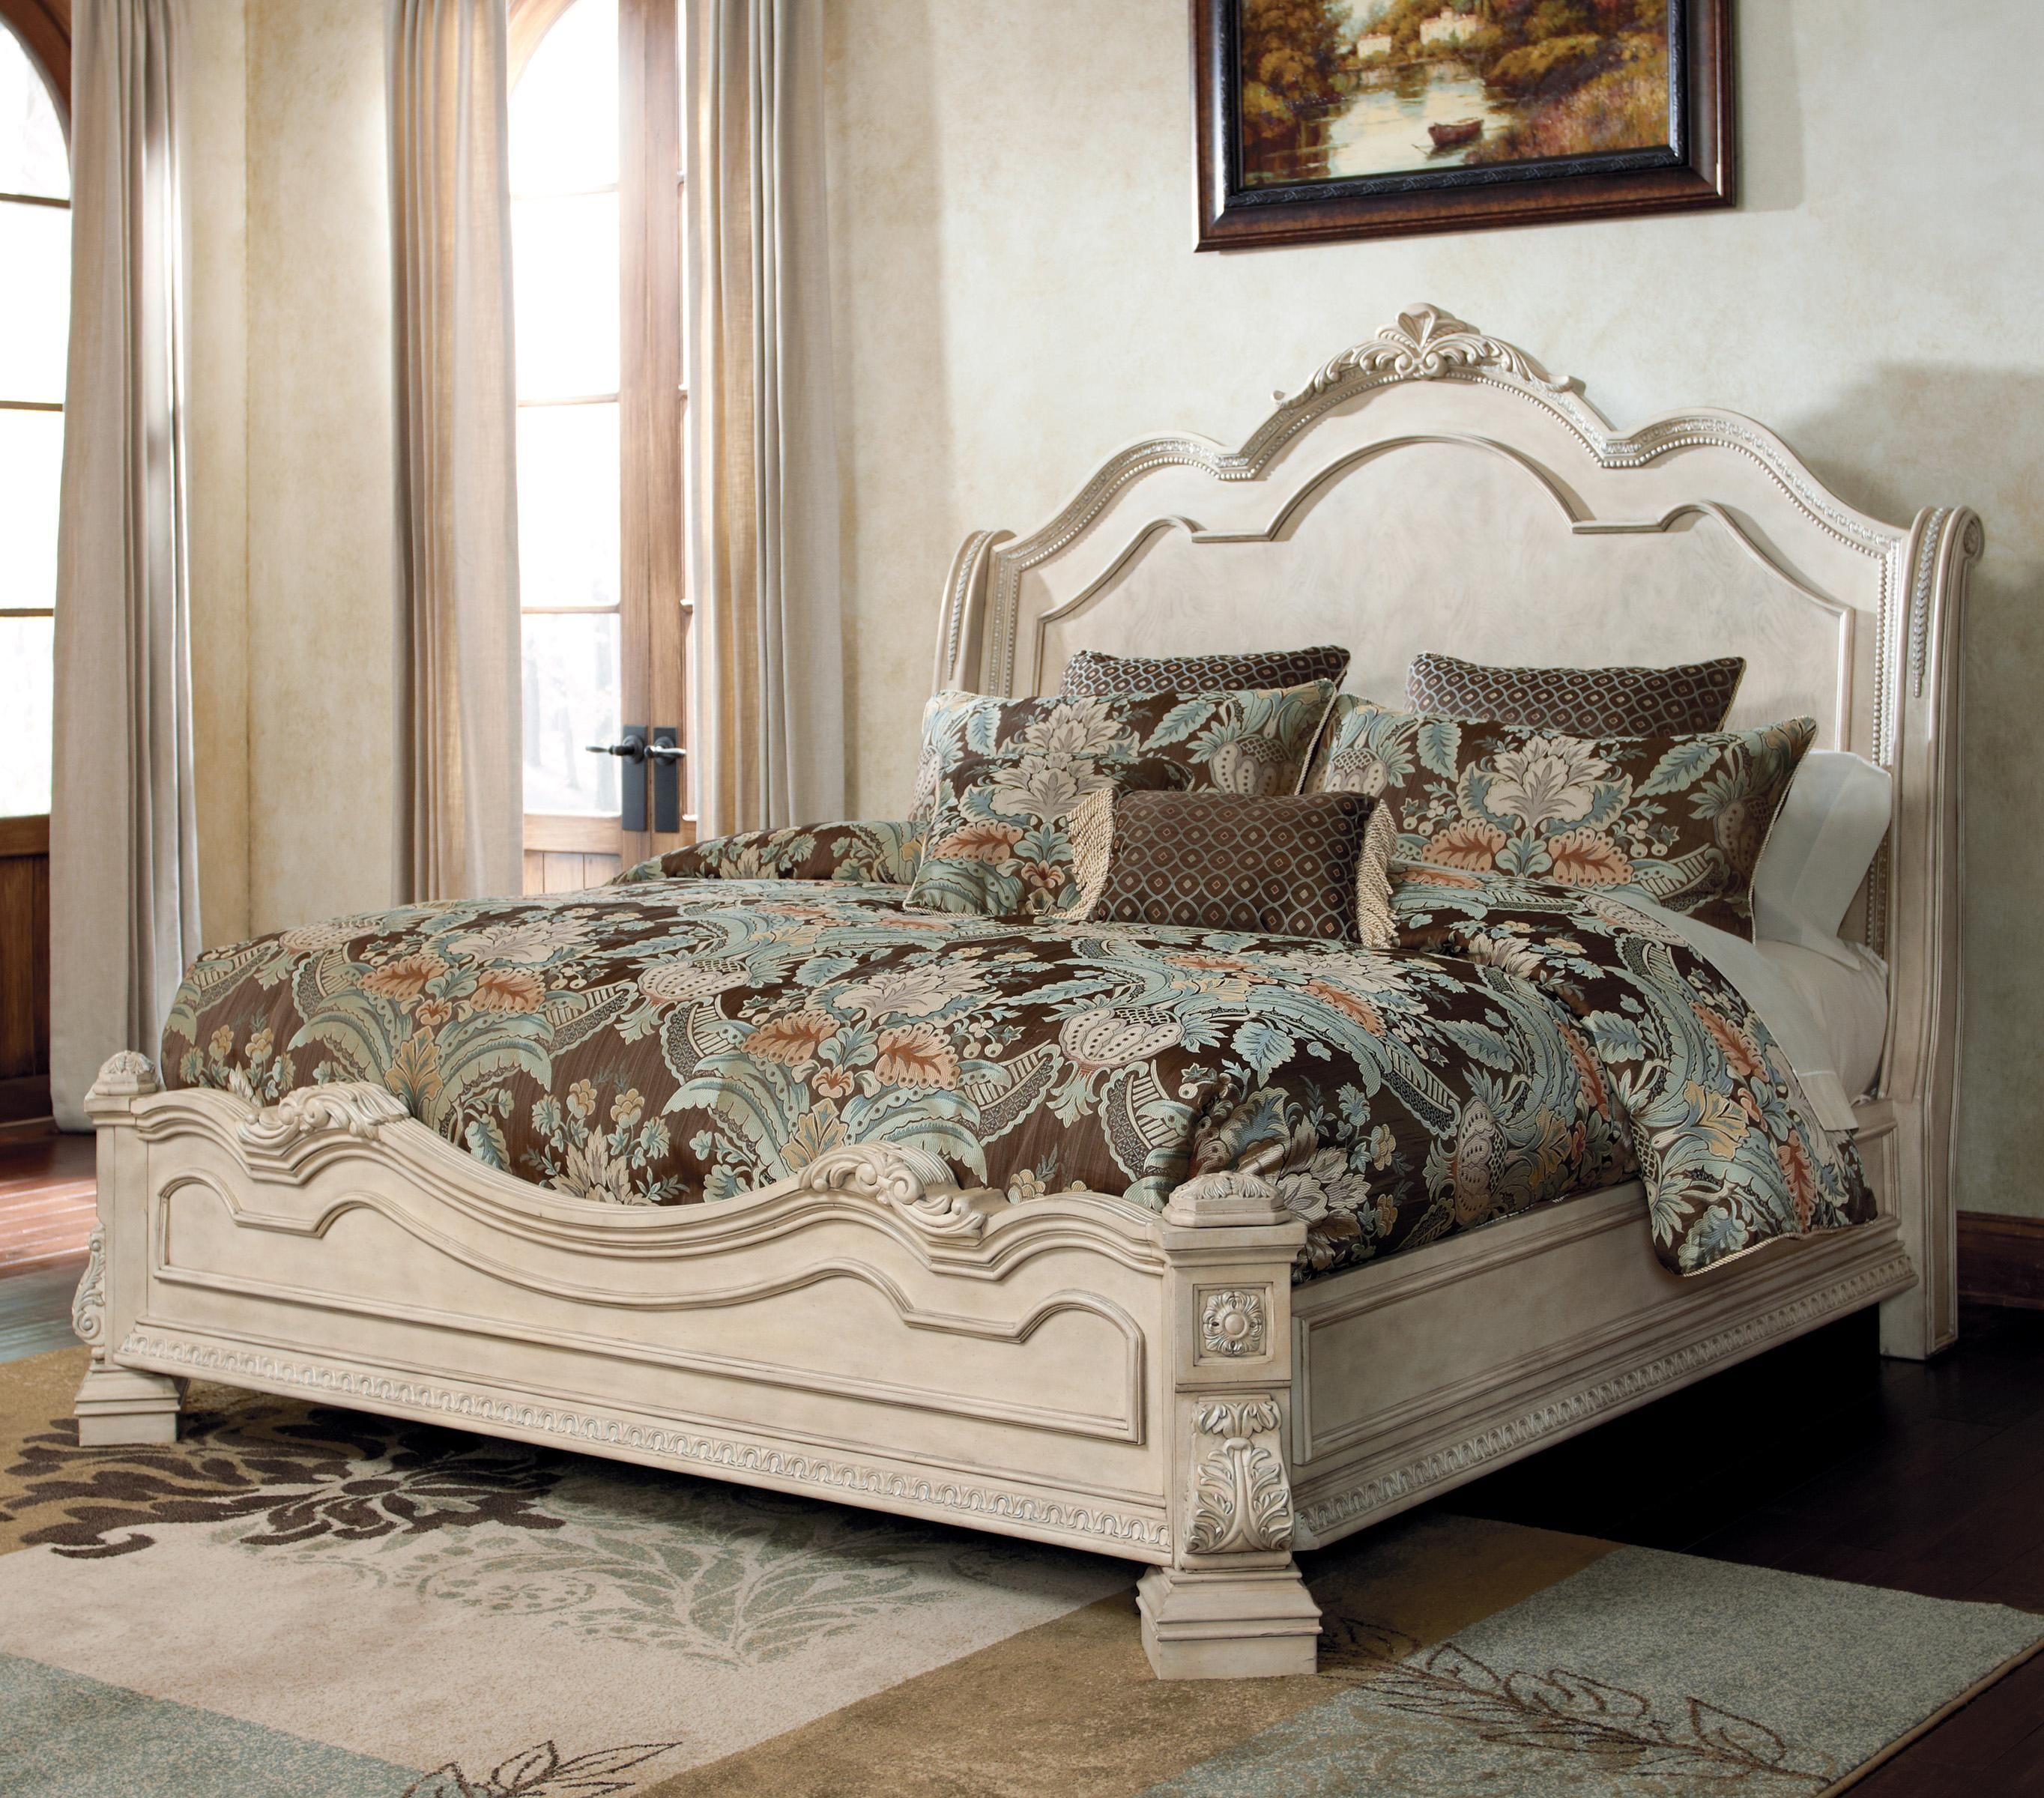 Ashley Furniture Millennium: The Ortanique Traditional Queen Bed With Sleigh Headboard